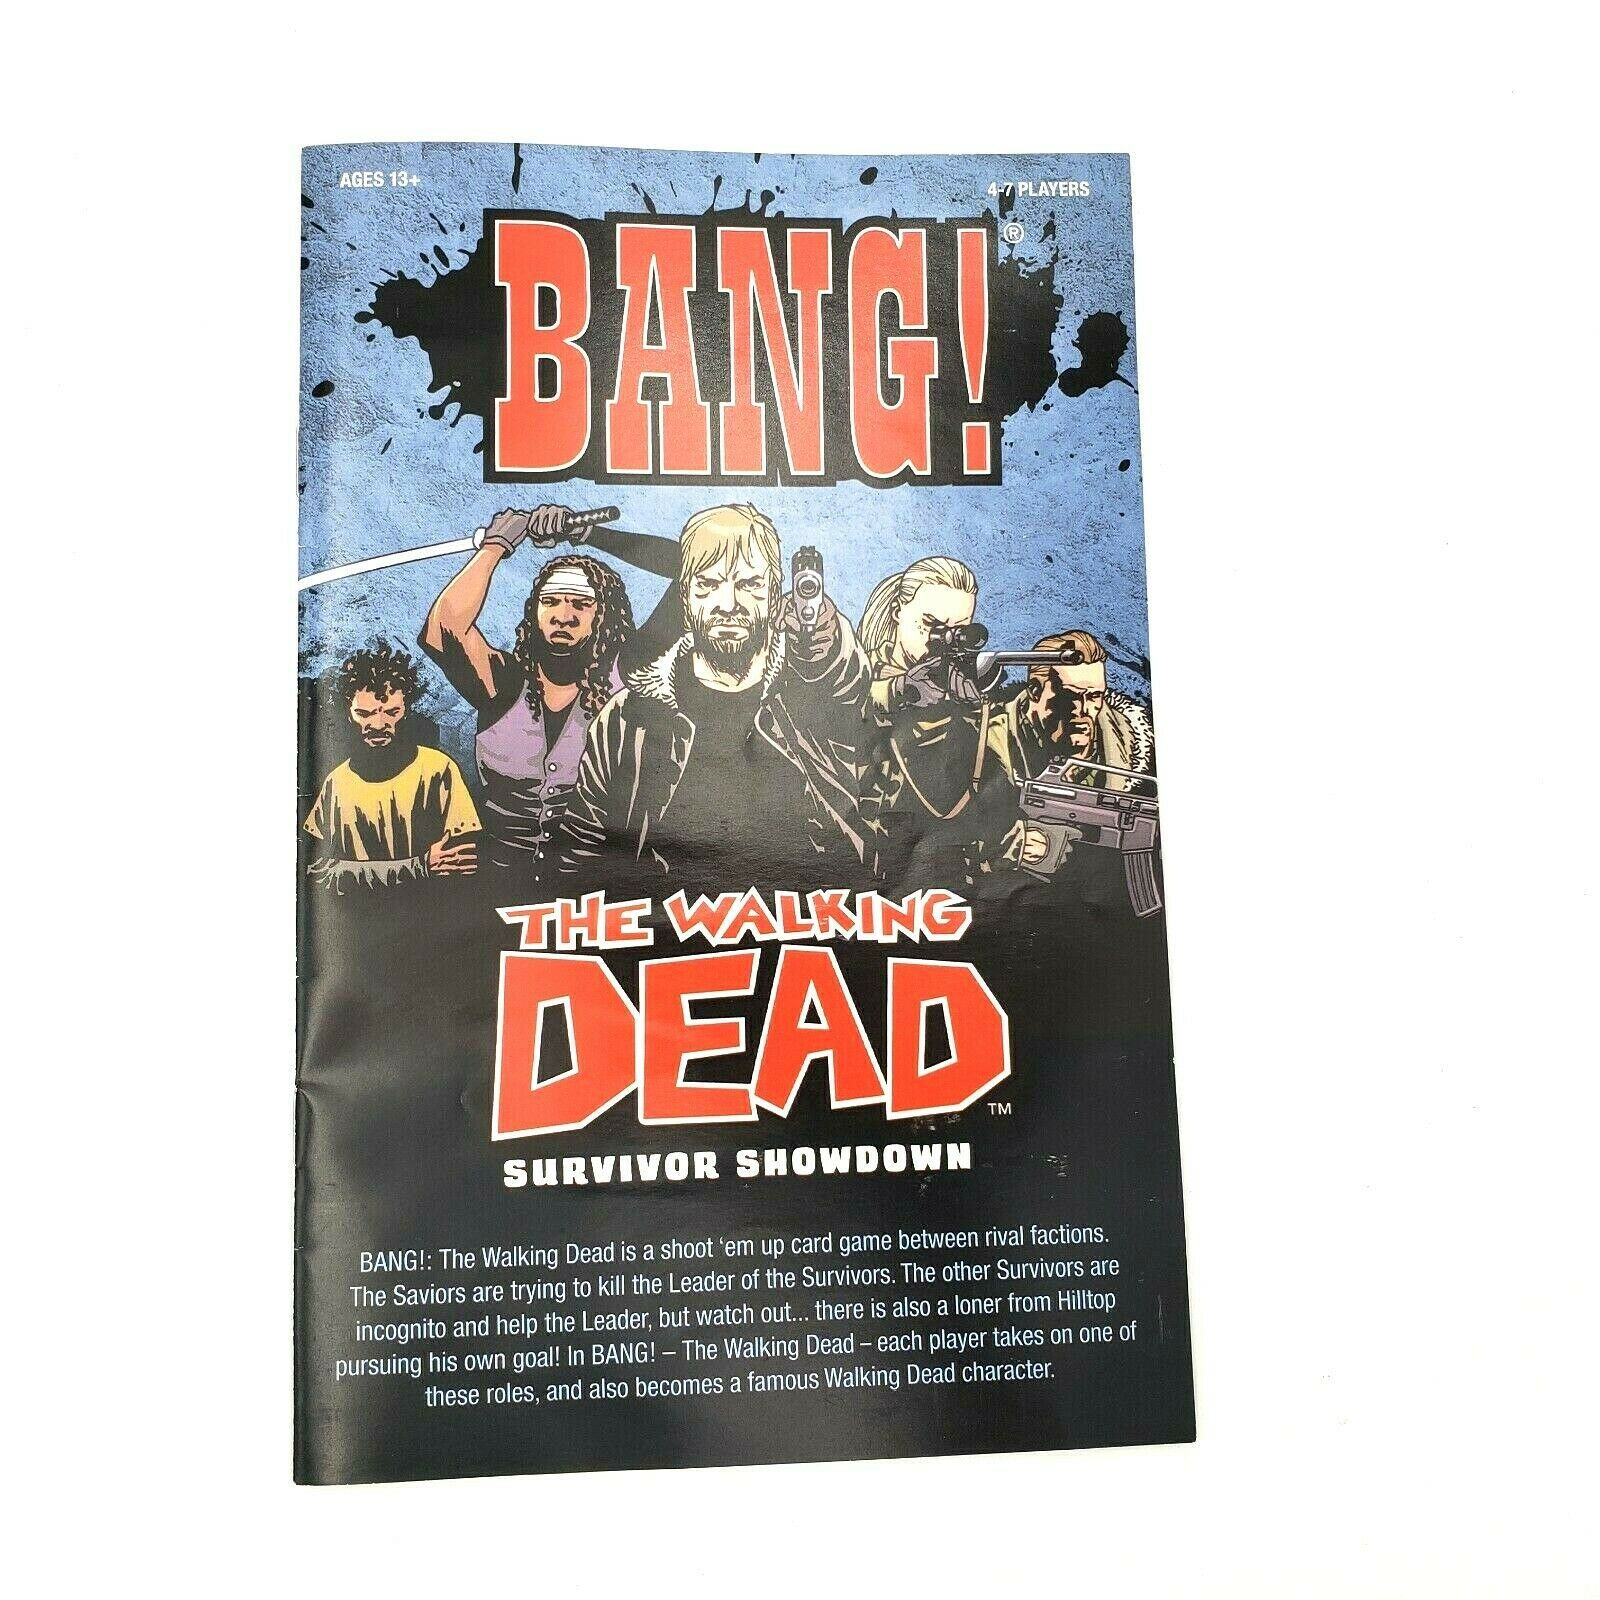 BANG! The Walking Dead Survivor Showdown Card Game (2014) 4–7 Players COMPLETE - $27.88